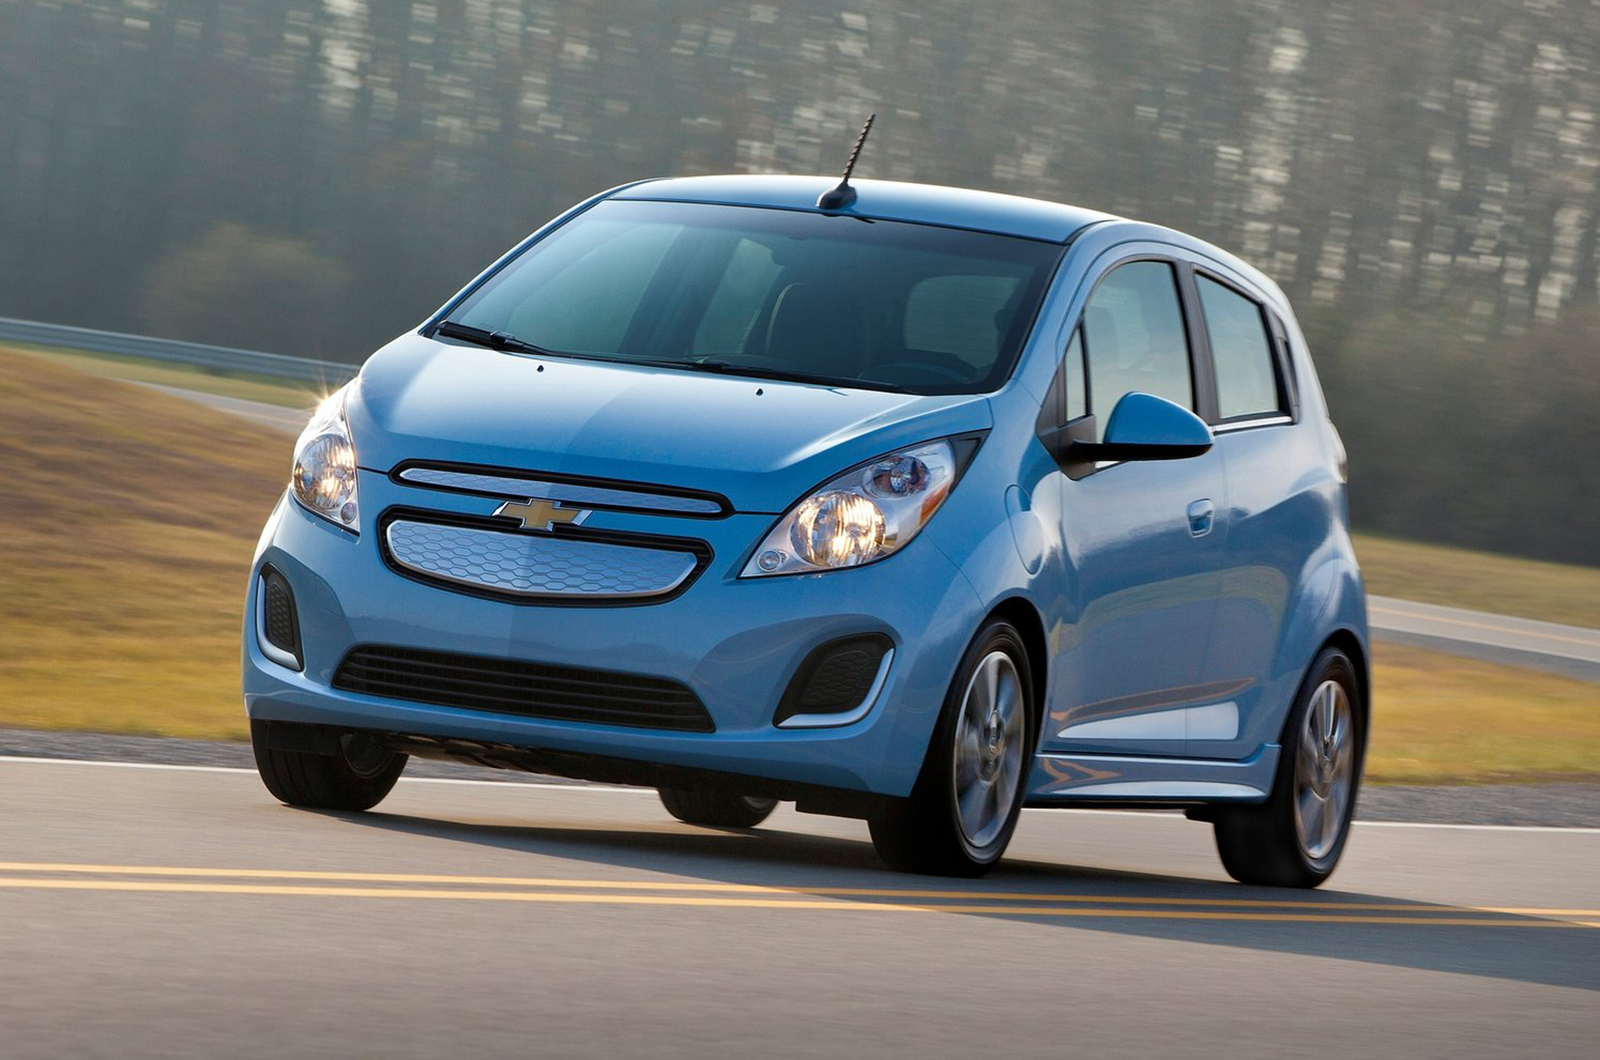 Meanwhile chevrolet continues to invest in electric vehicles with the 2014 spark